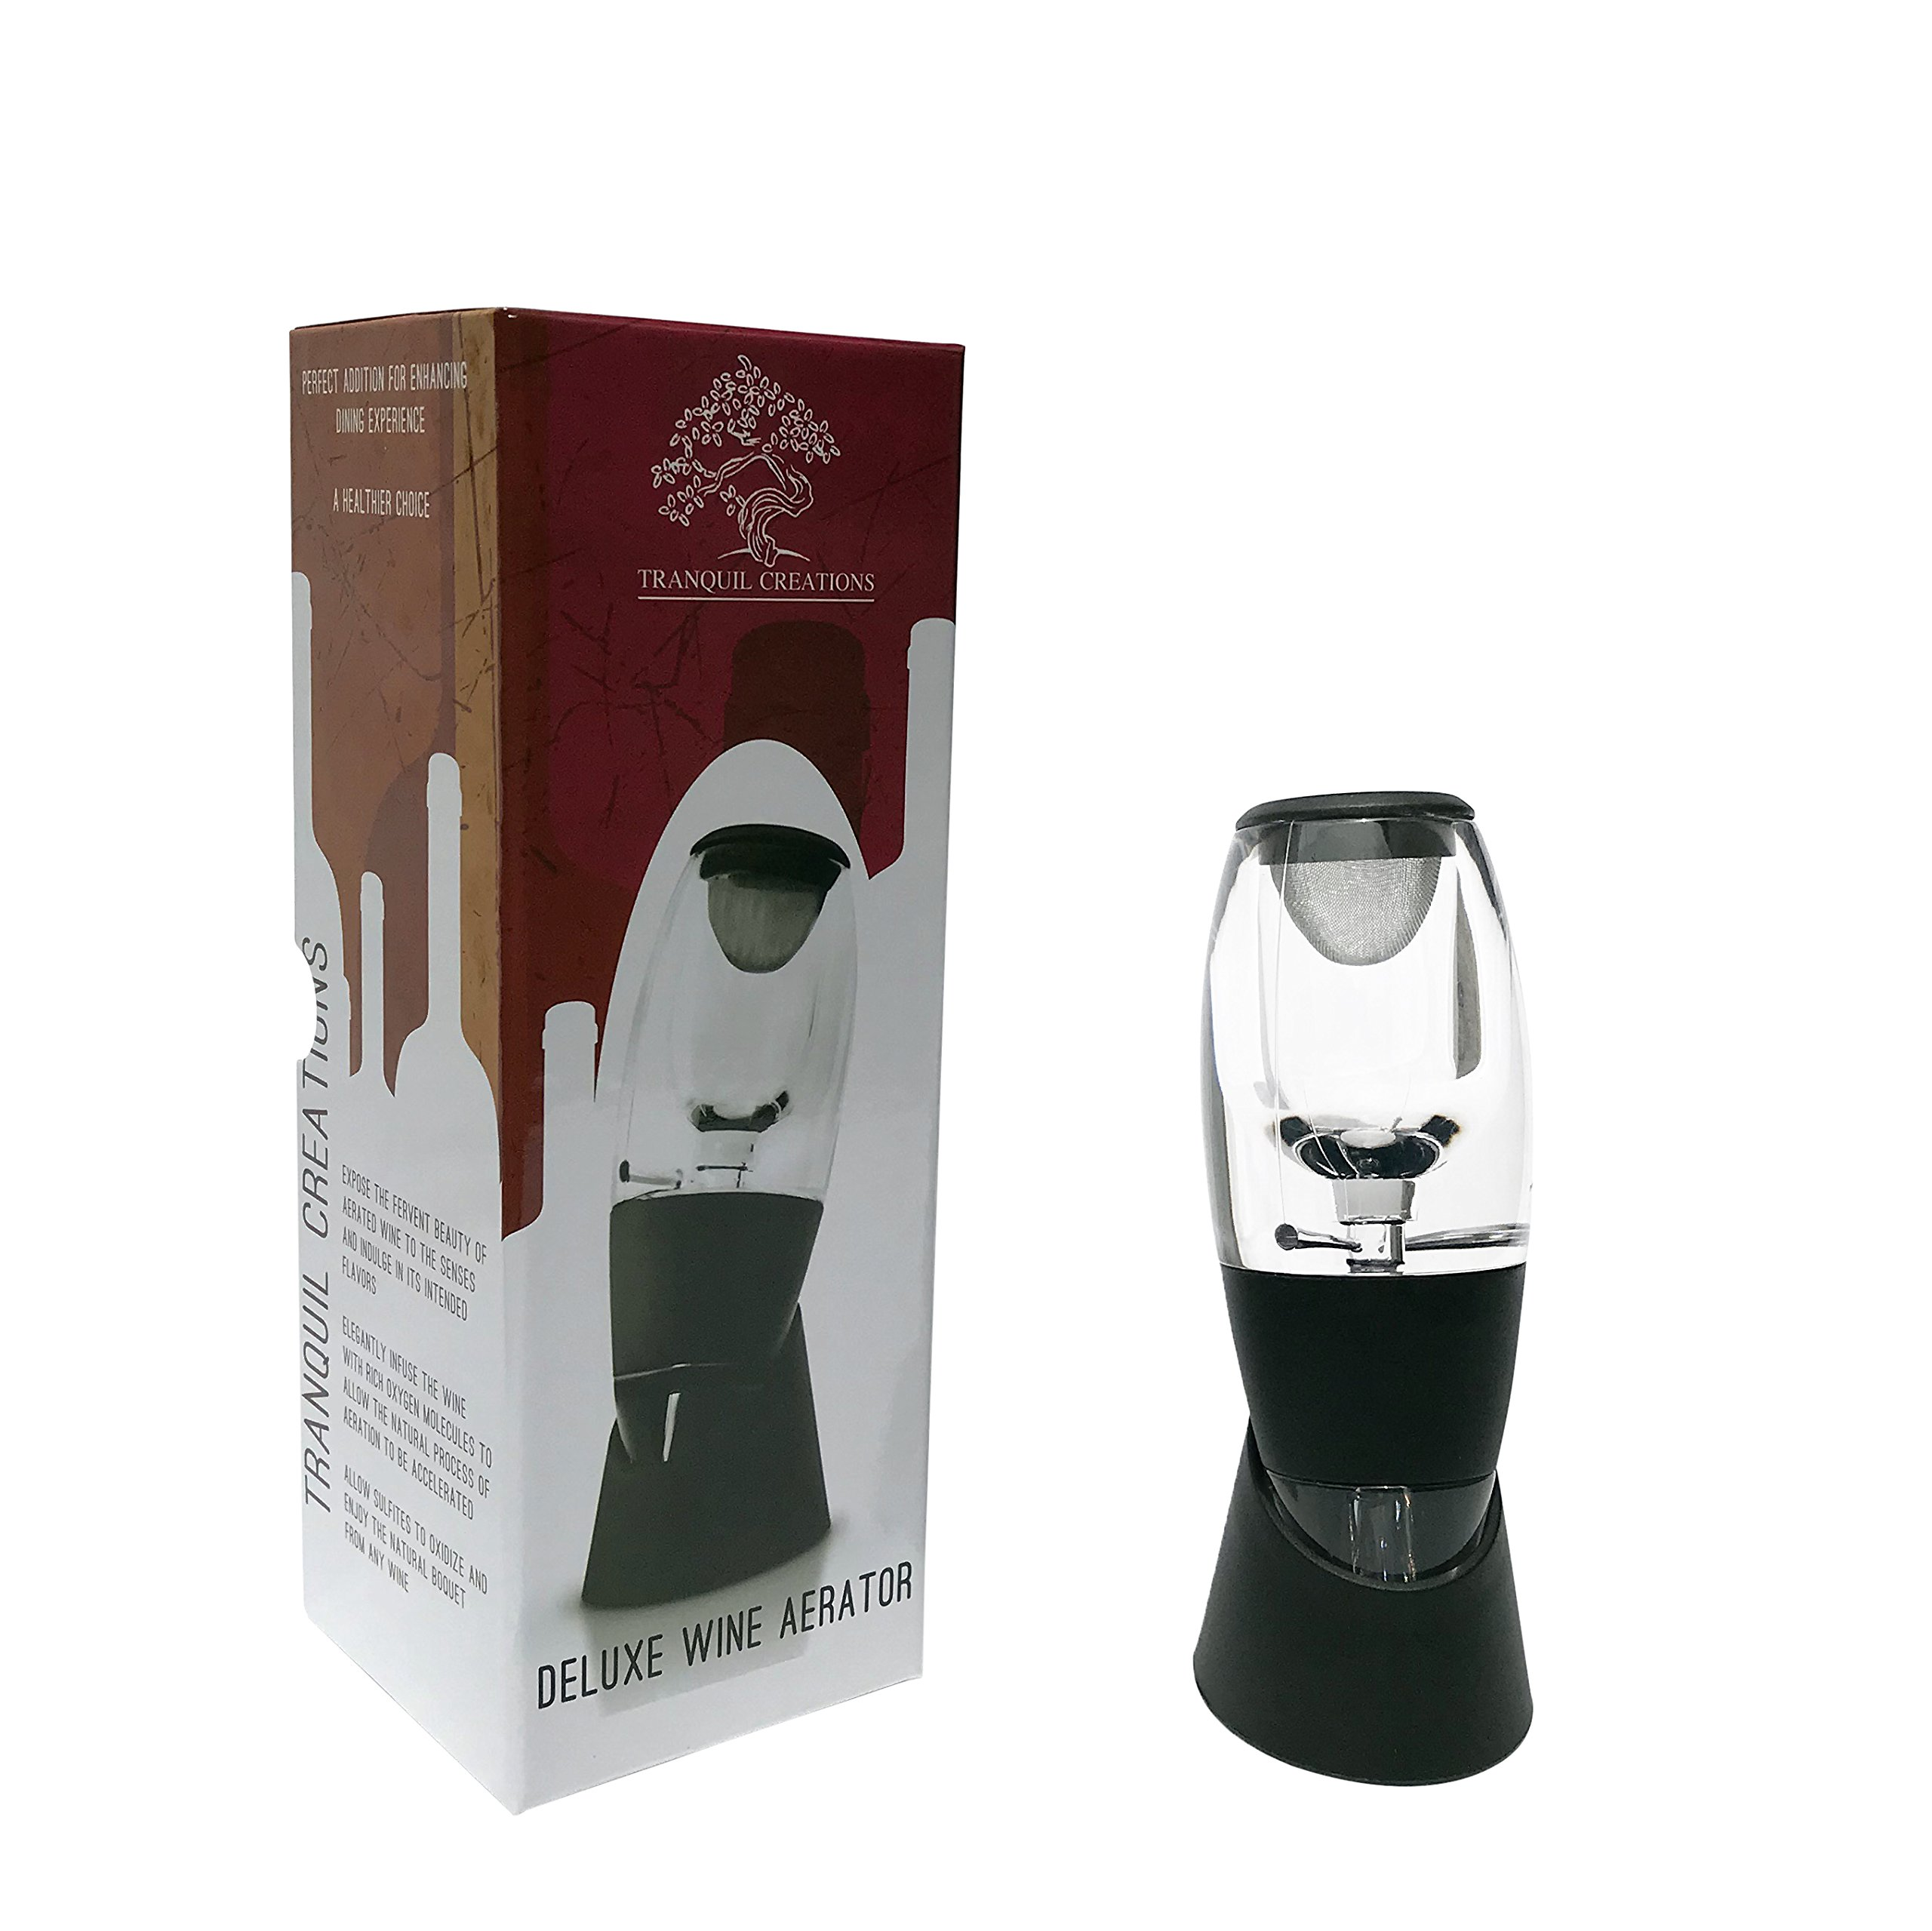 Wine Aerator/Decanter | Allows Wine to Infuse with Oxygen from the Bottle to the Glass